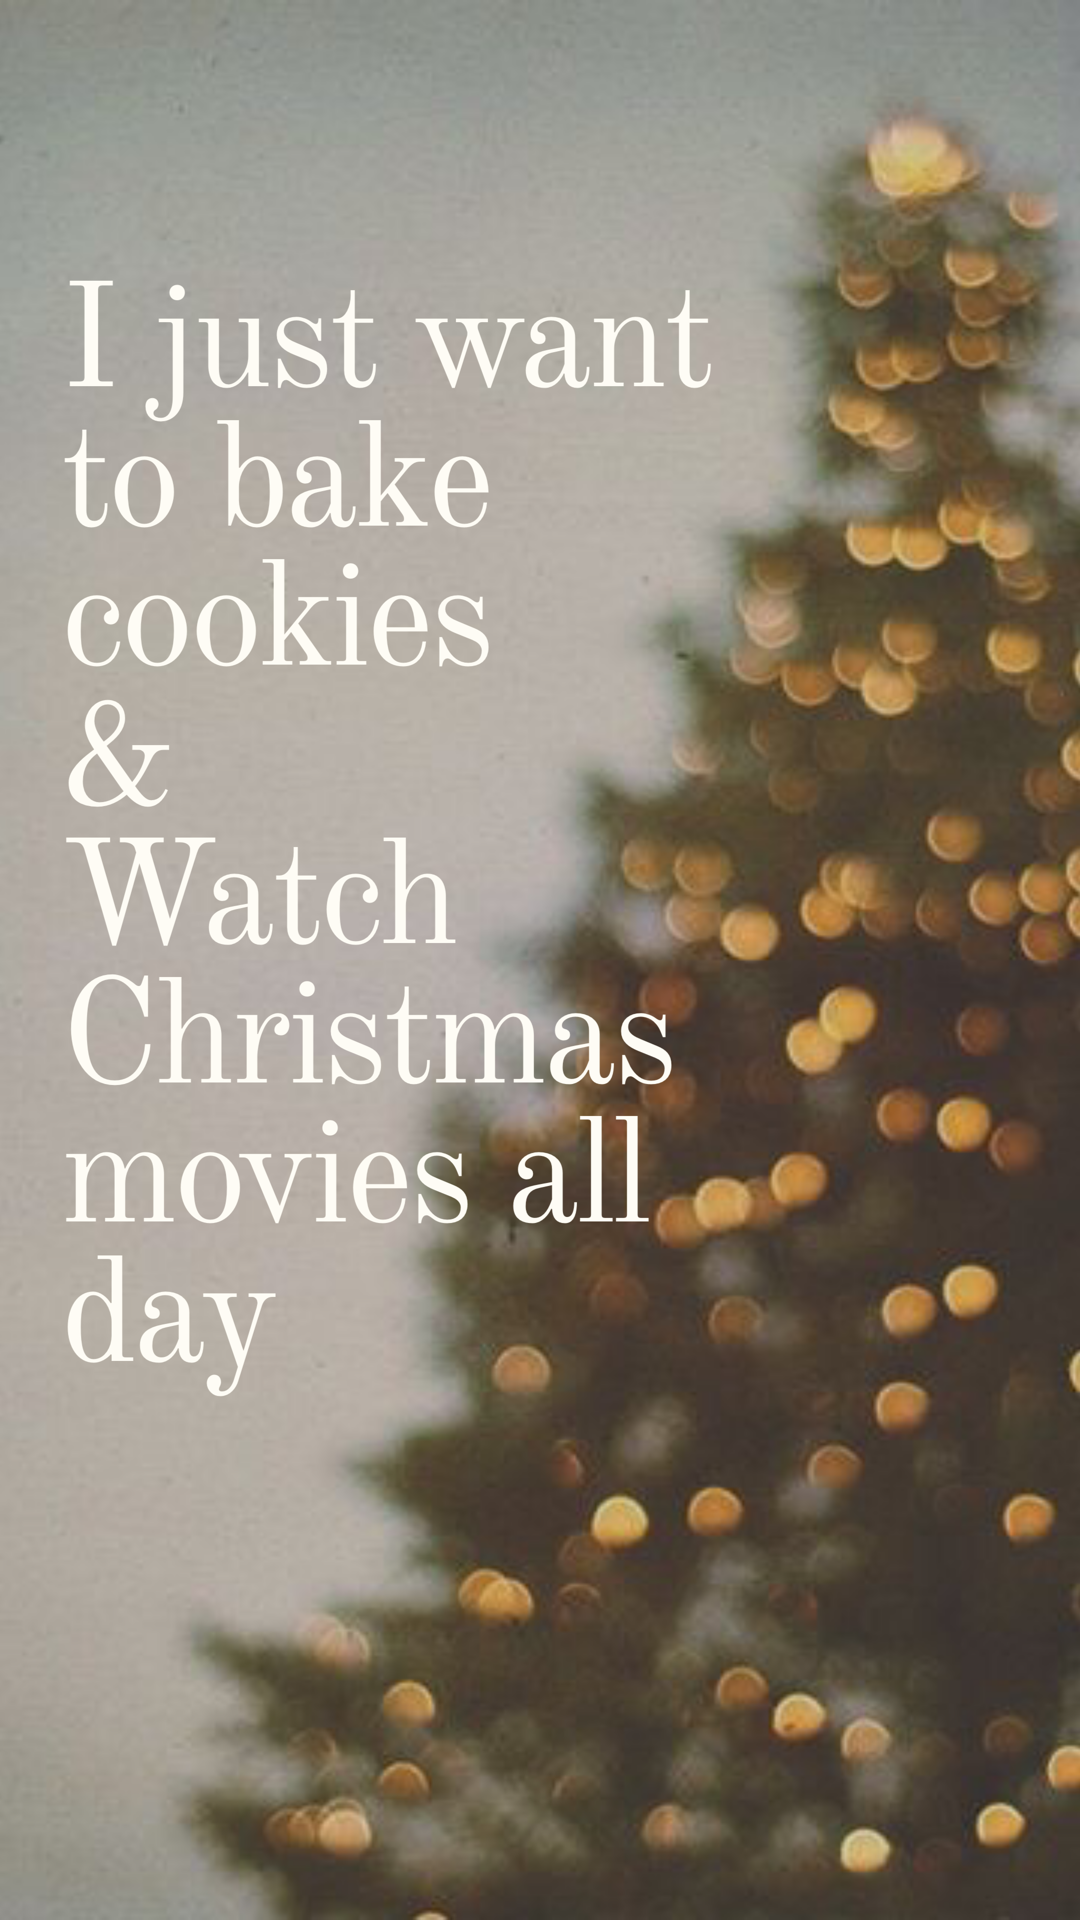 Christmas Cookies And Christmas Movies Quote Christmas Movie Quotes Xmas Quotes Cookie Quotes